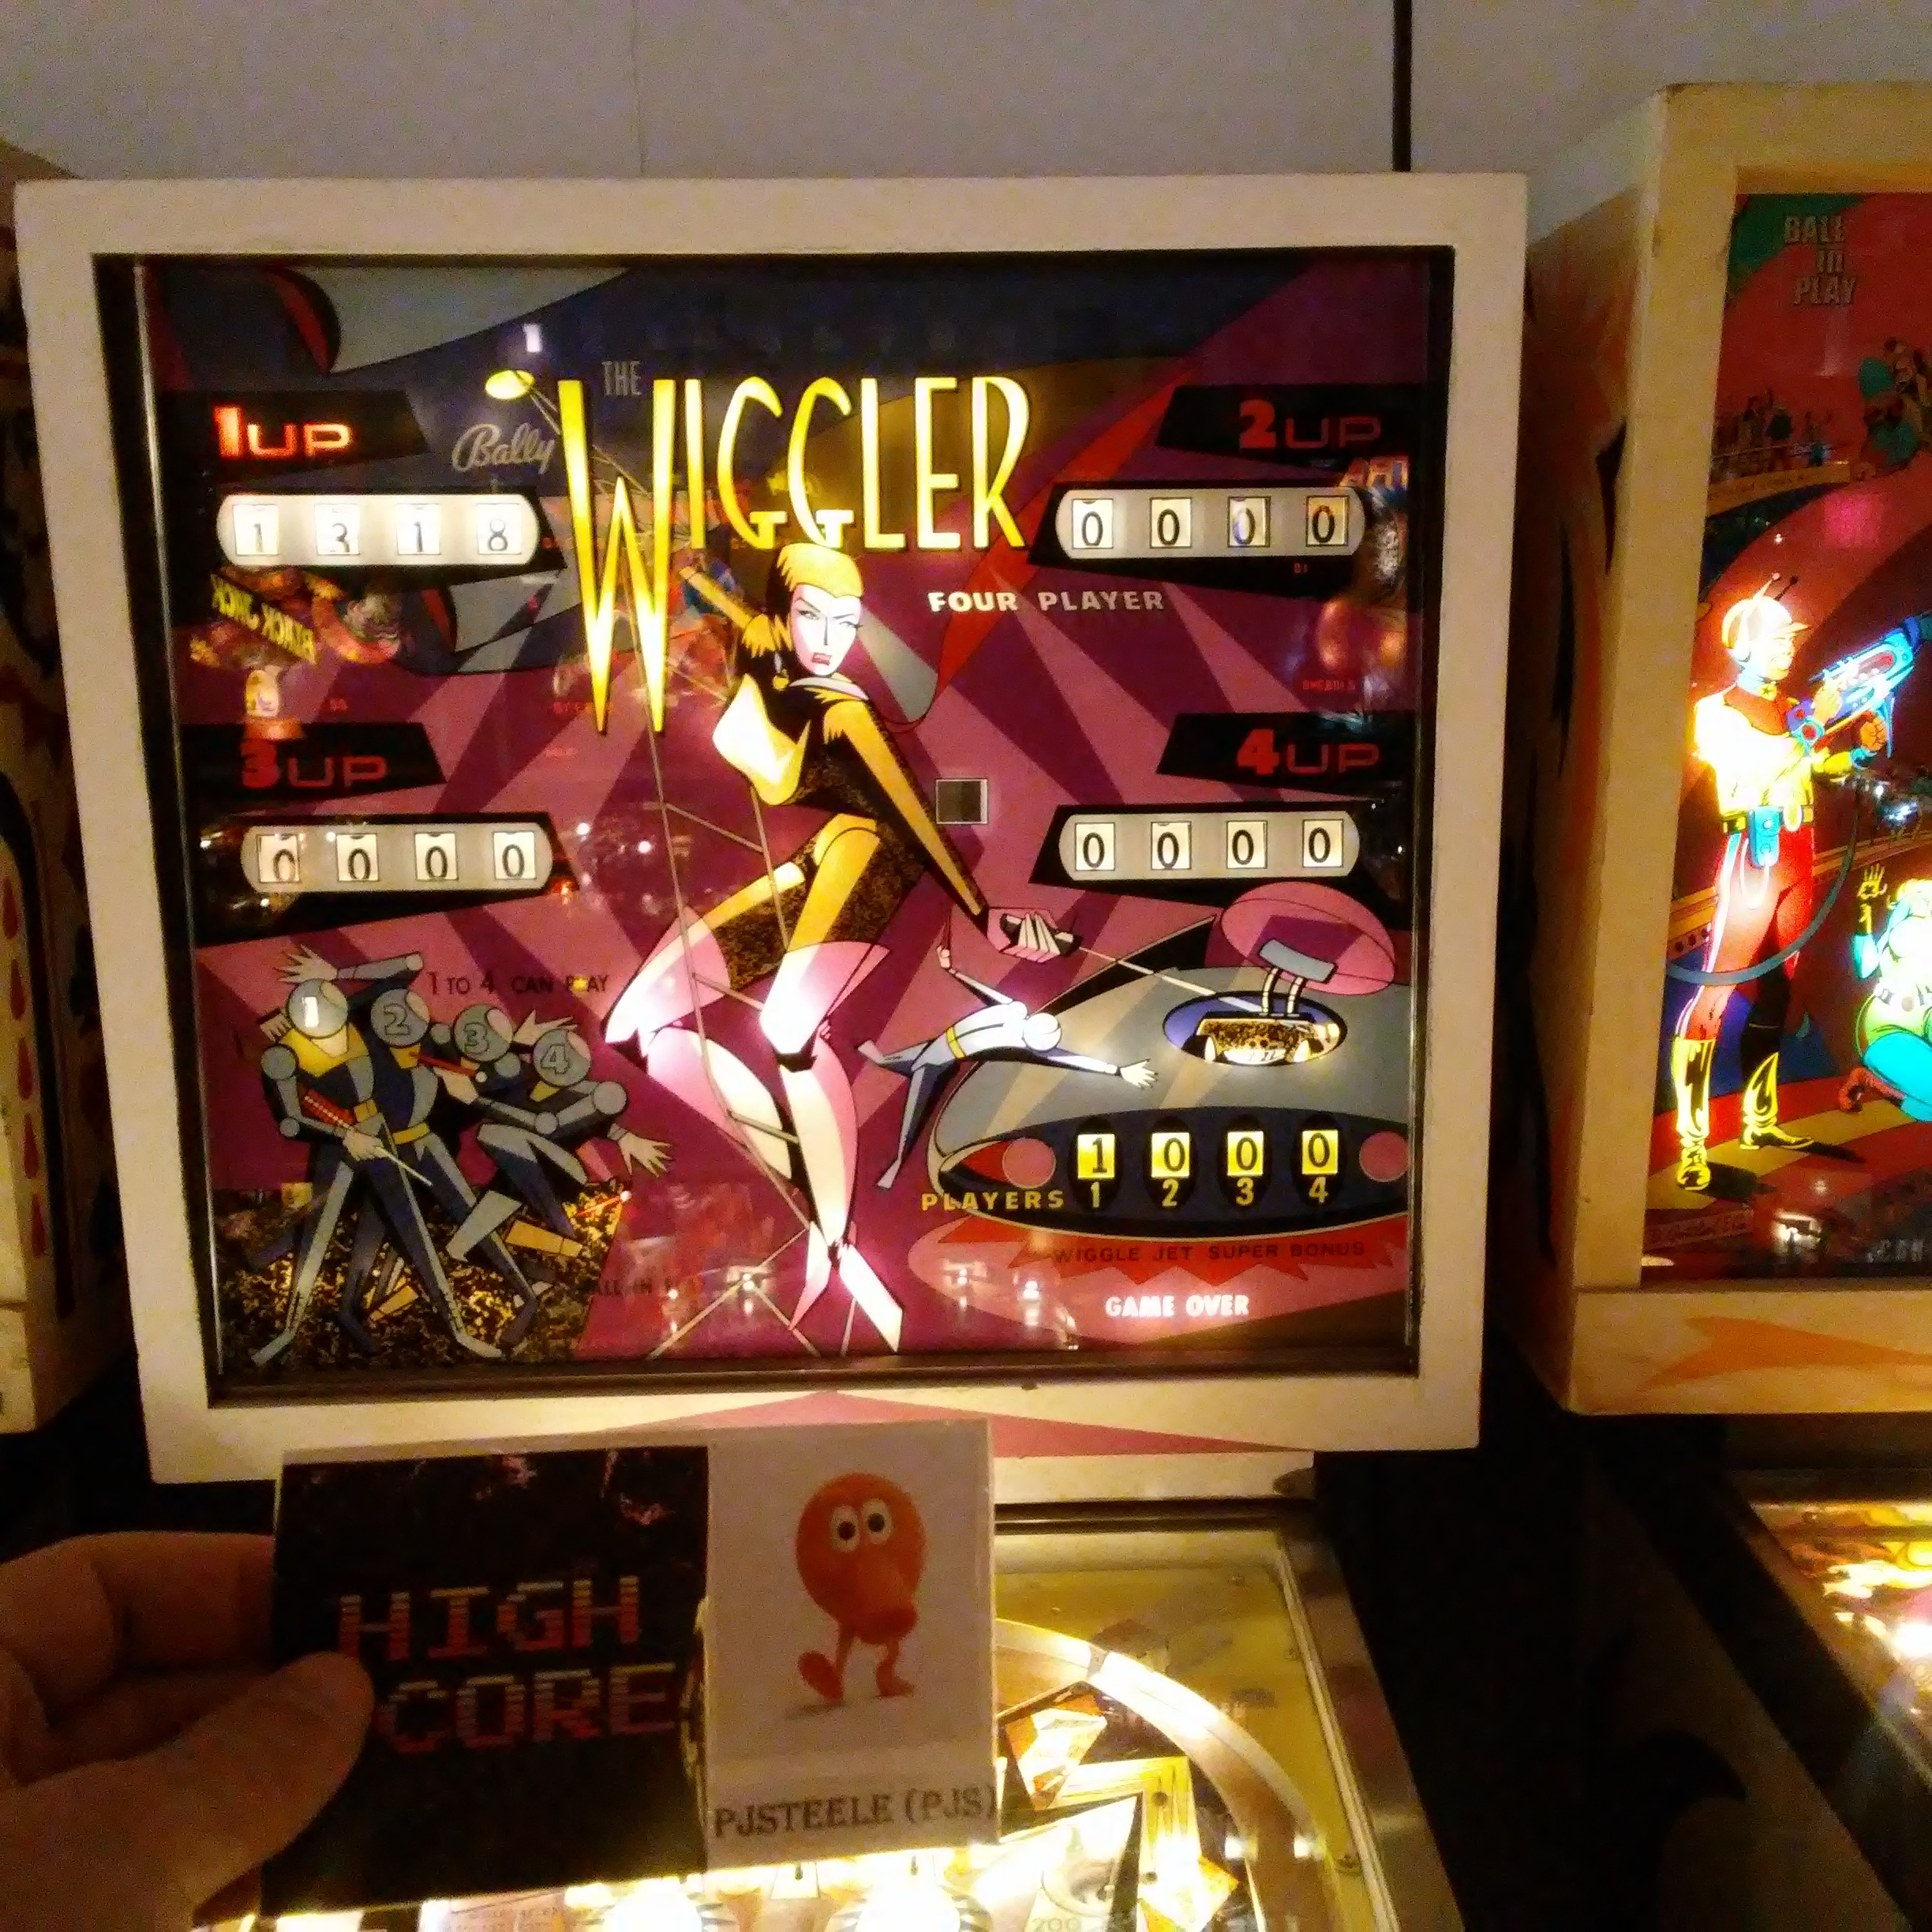 Pjsteele: The Wiggler (Pinball: 5 Balls) 1,318 points on 2017-12-31 18:39:47